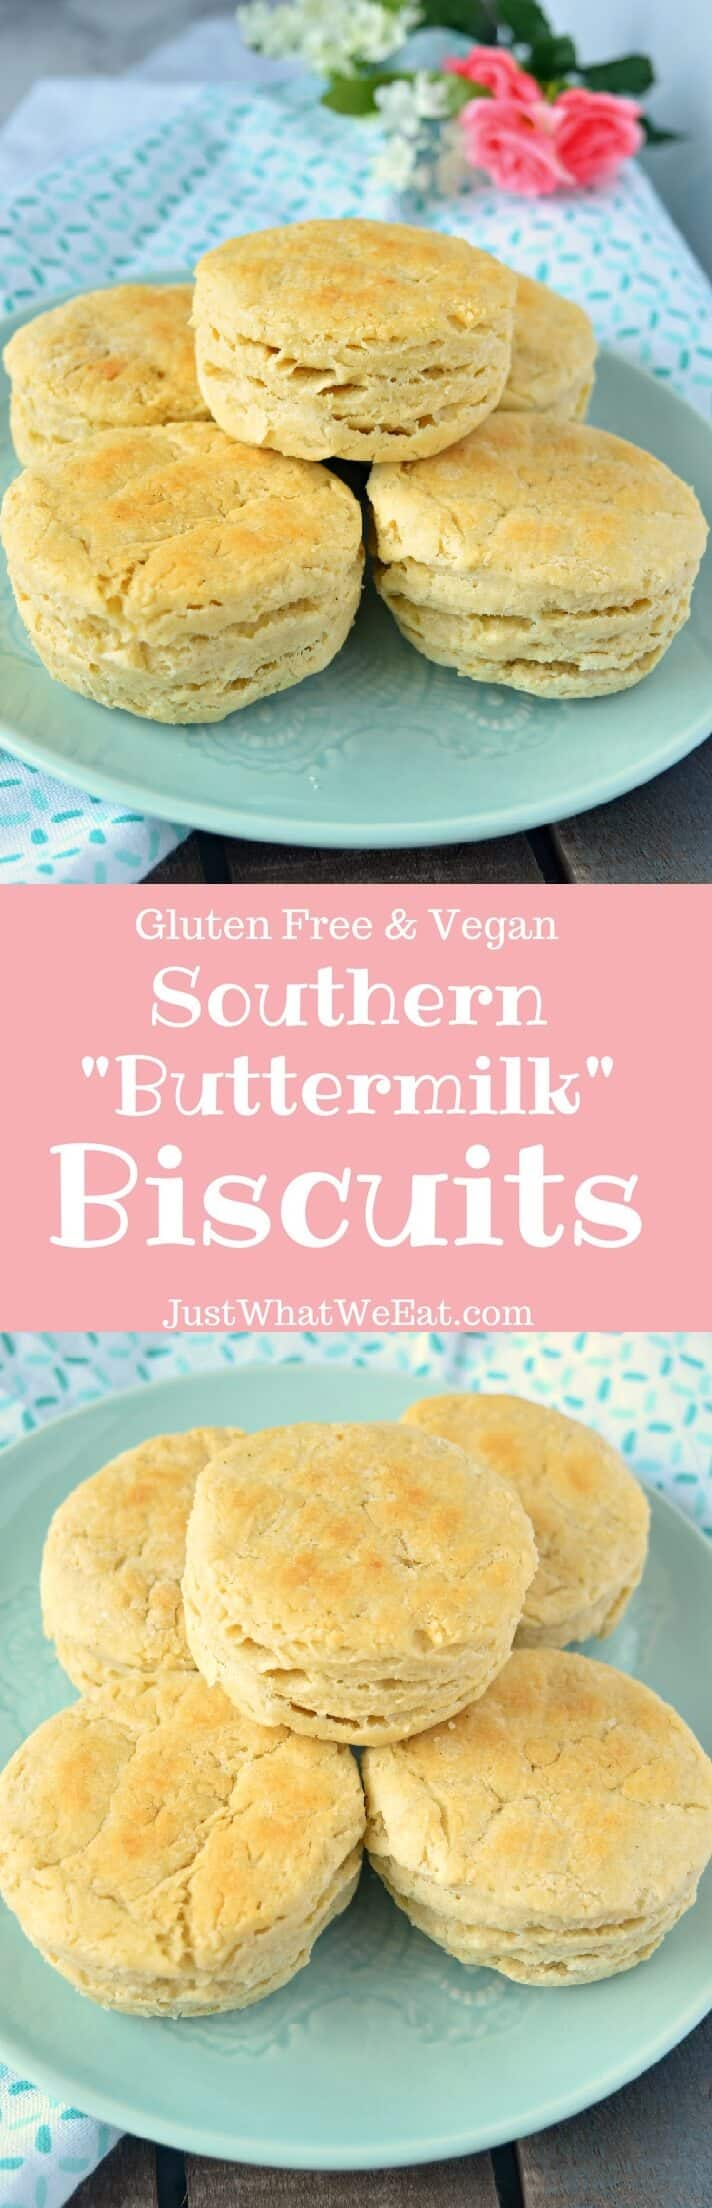 "Southern ""Buttermilk"" Biscuits - Gluten Free & Vegan"